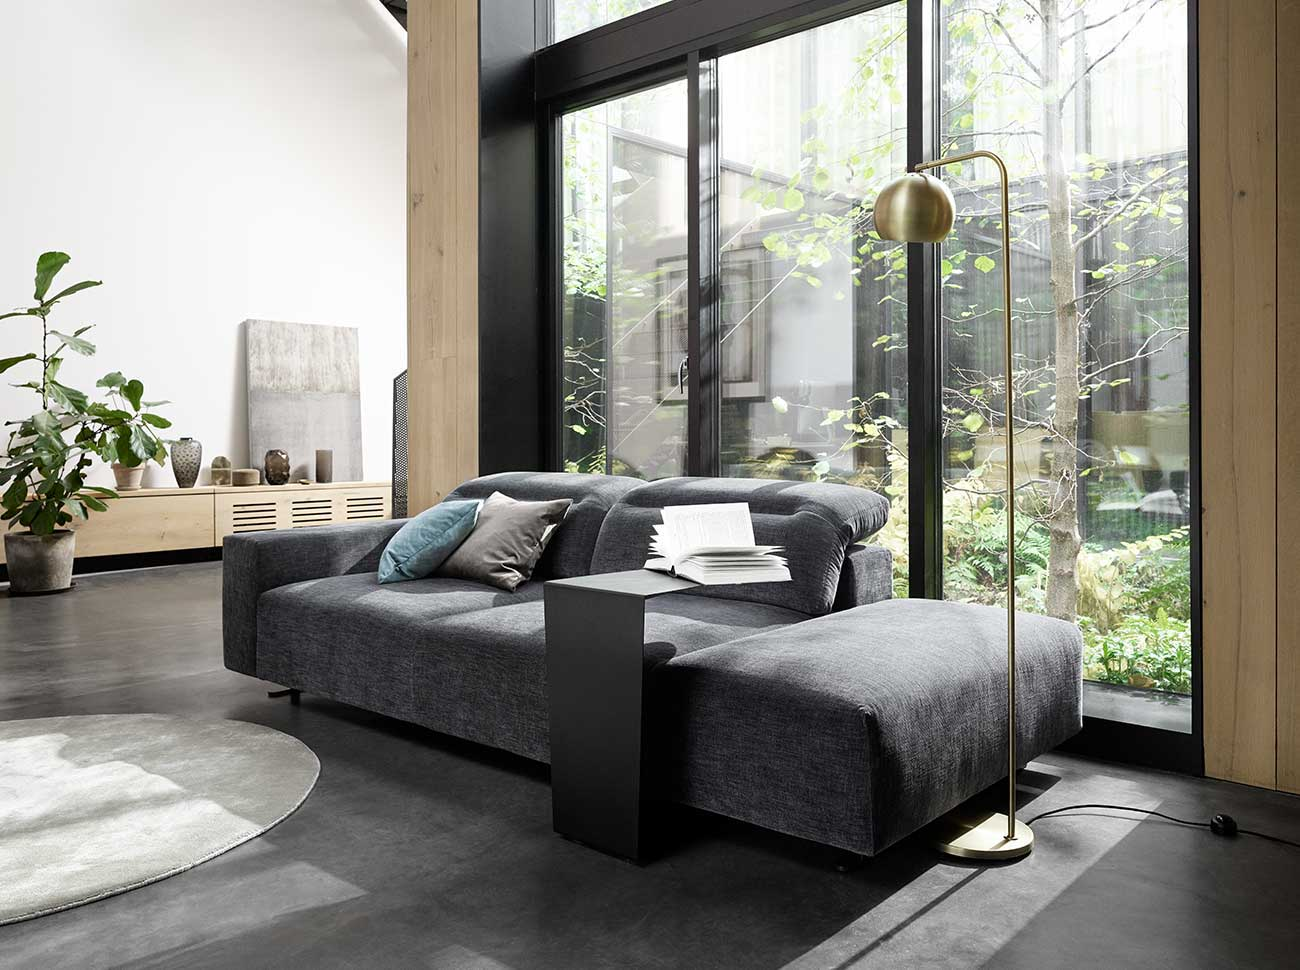 Sofa with open end